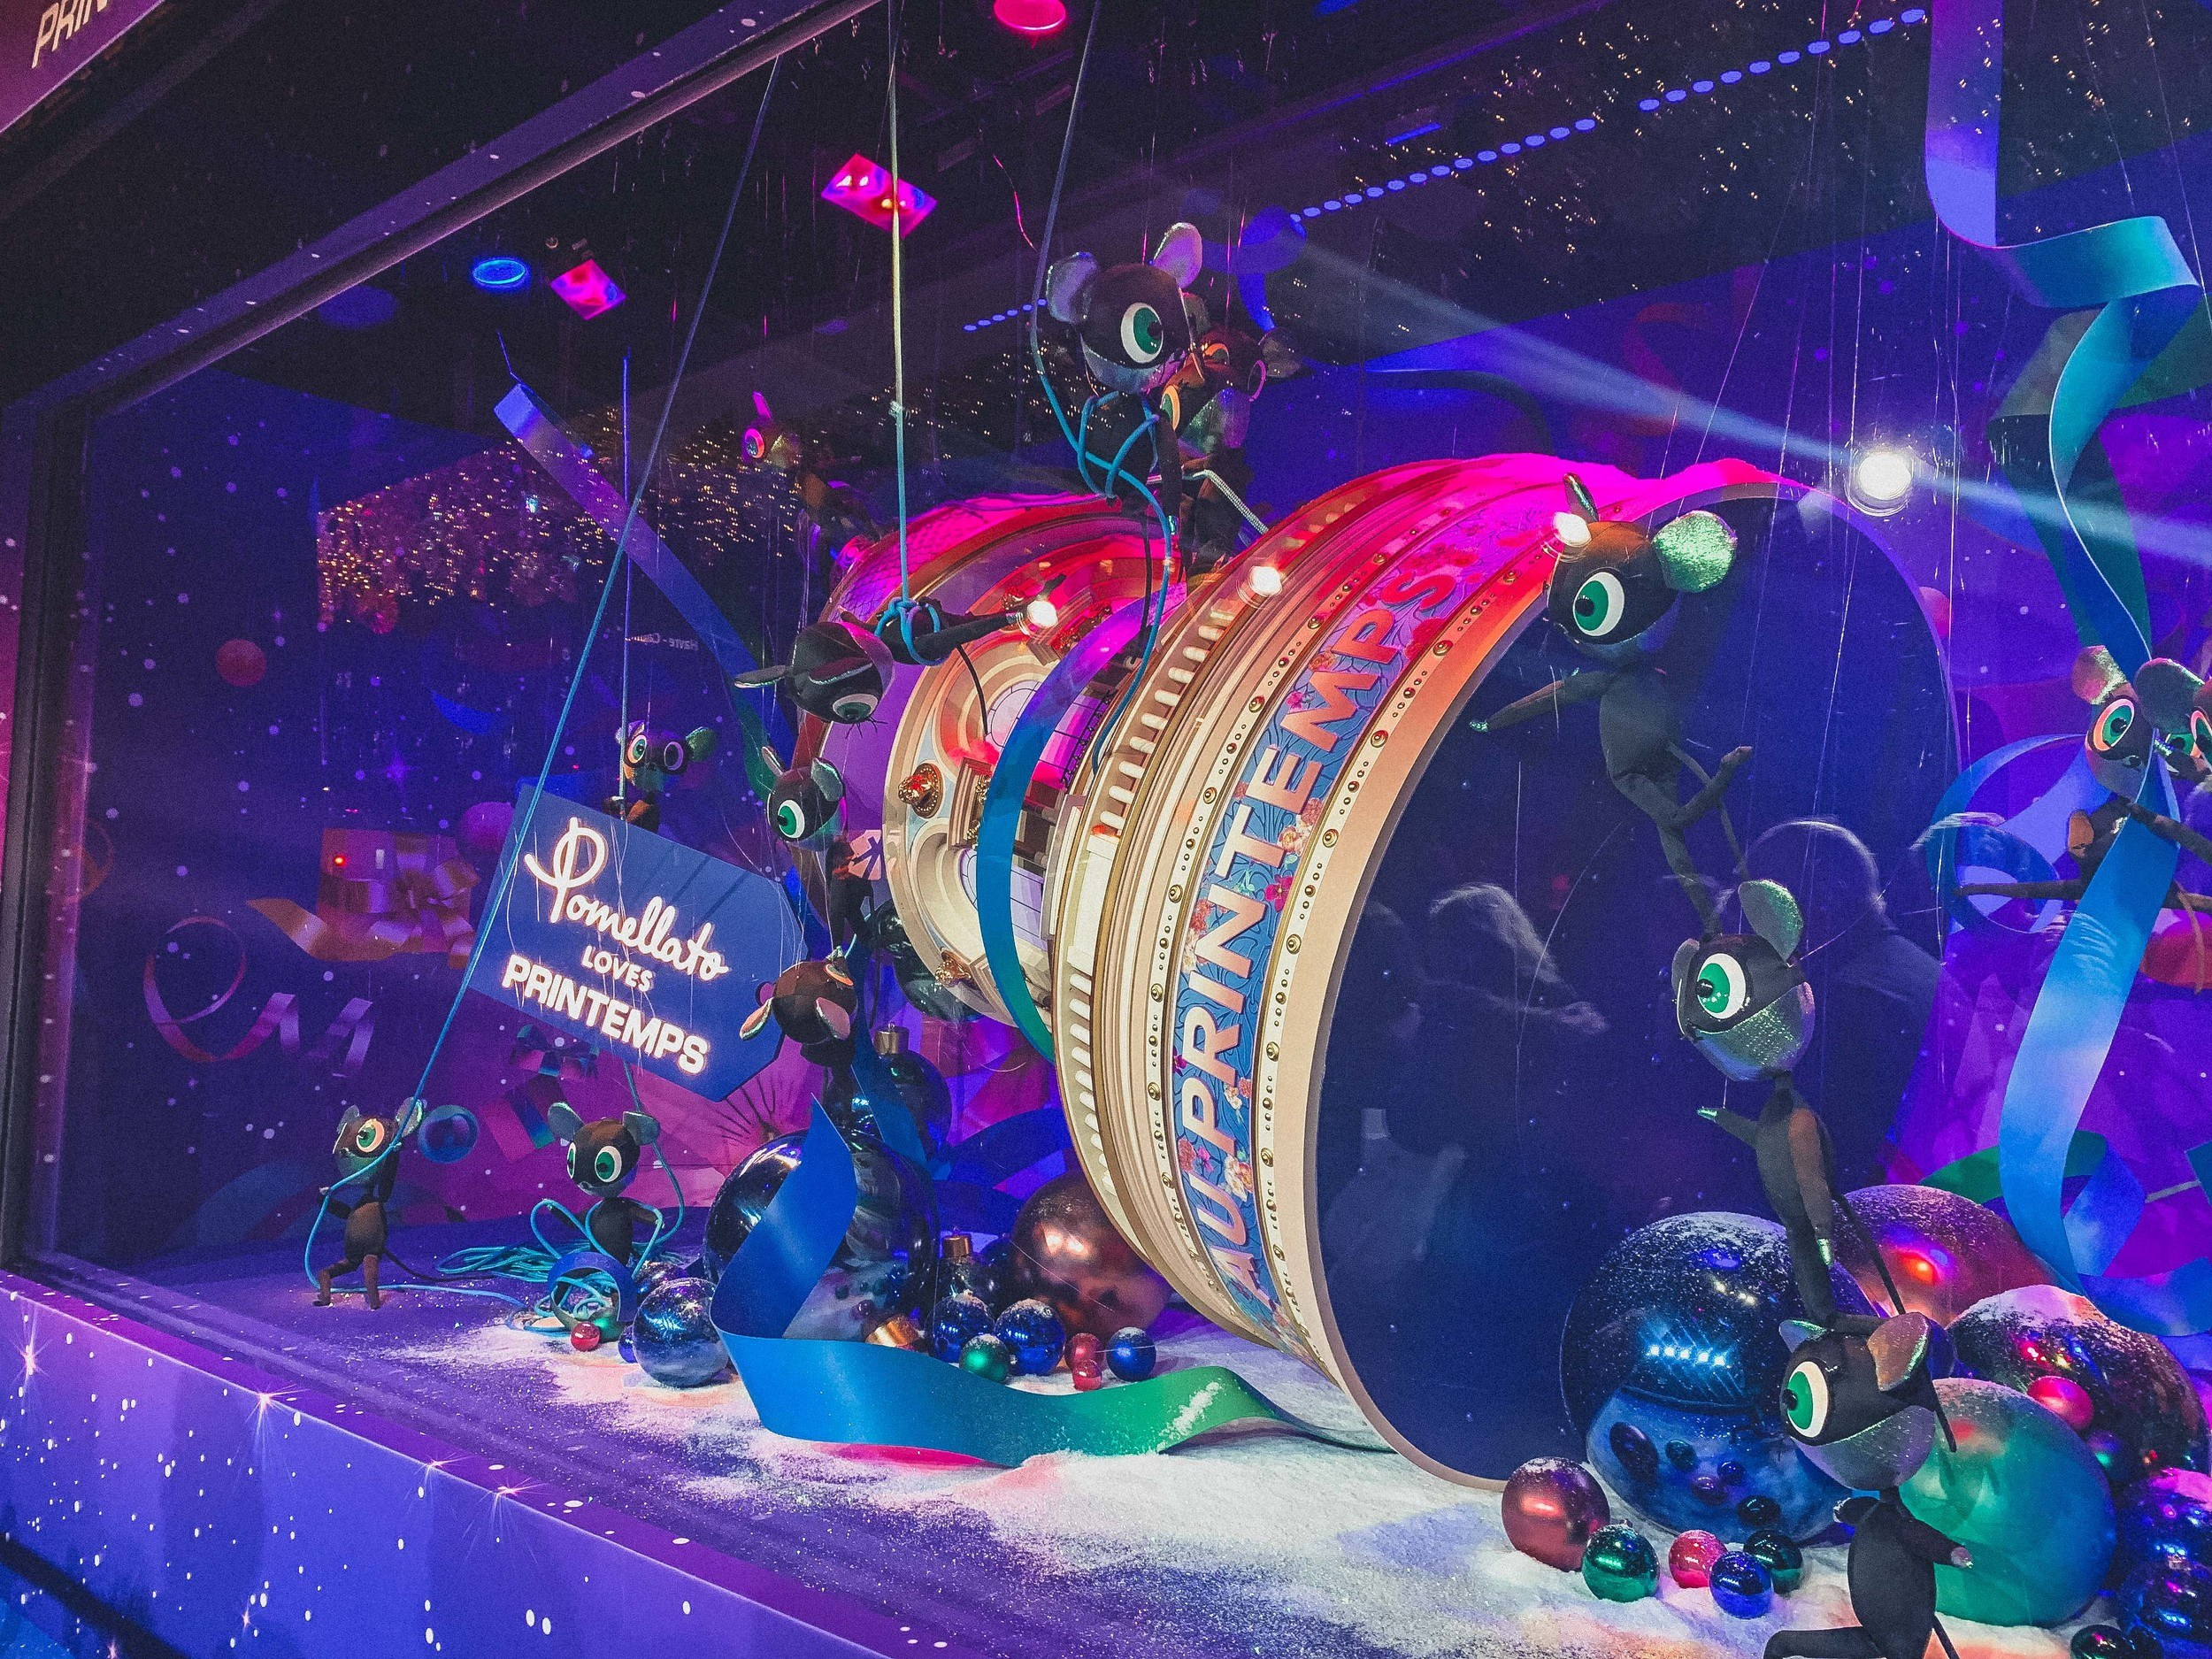 An Insider's Guide to Printemps Christmas Windows 2019 in the 9th arrondissement, Paris, France